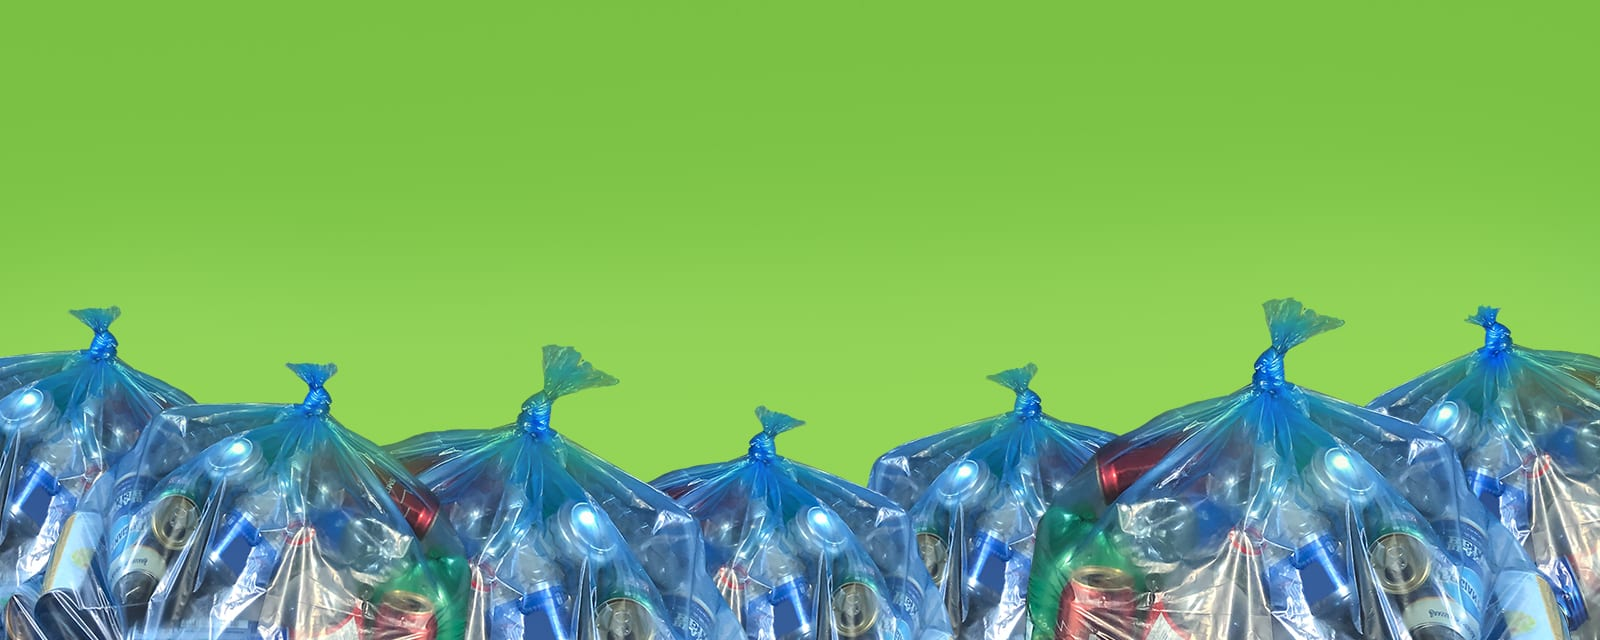 Many blue recycling bags filled with recyclables on a bright green background with the text Green Depots Open For Xpress Only.